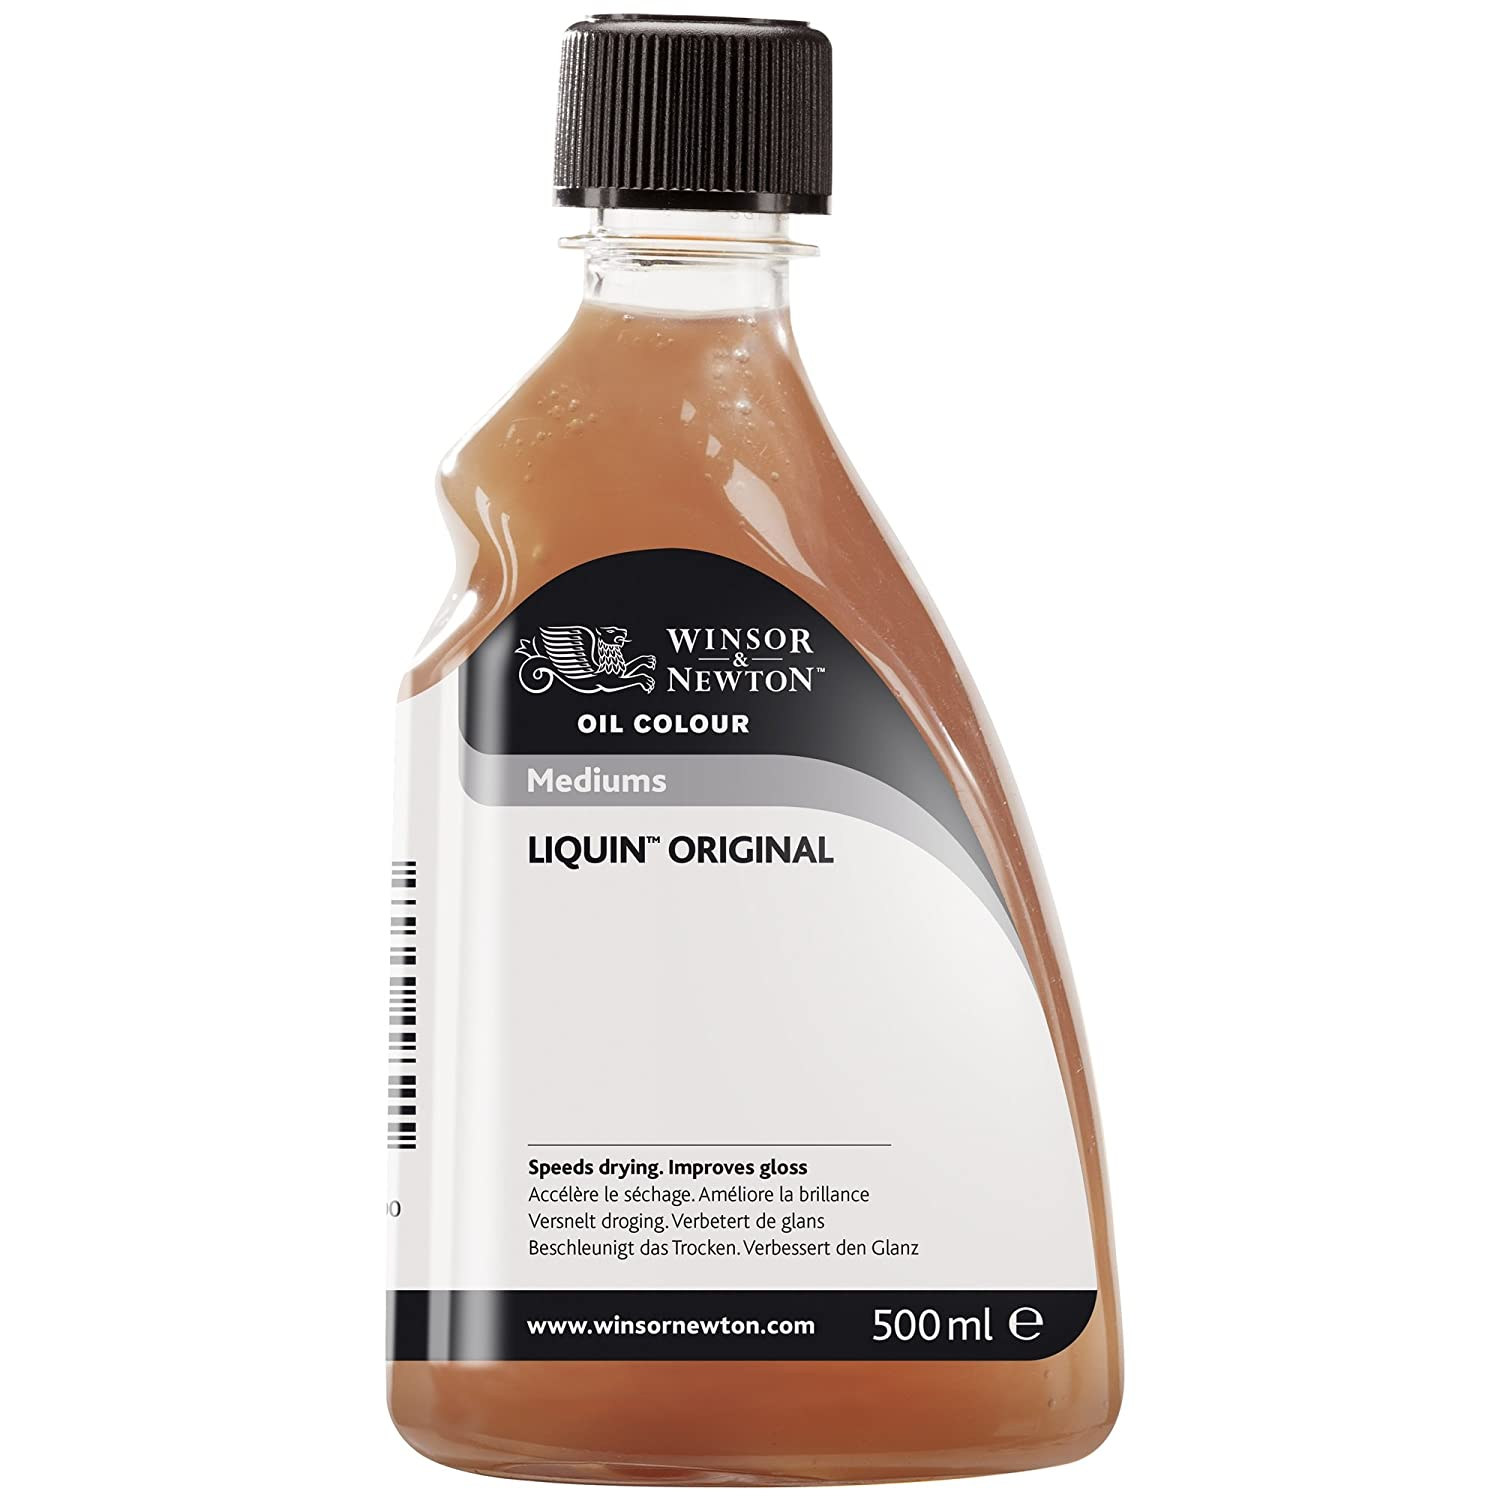 Winsor & Newton Liquin Original, 500ml